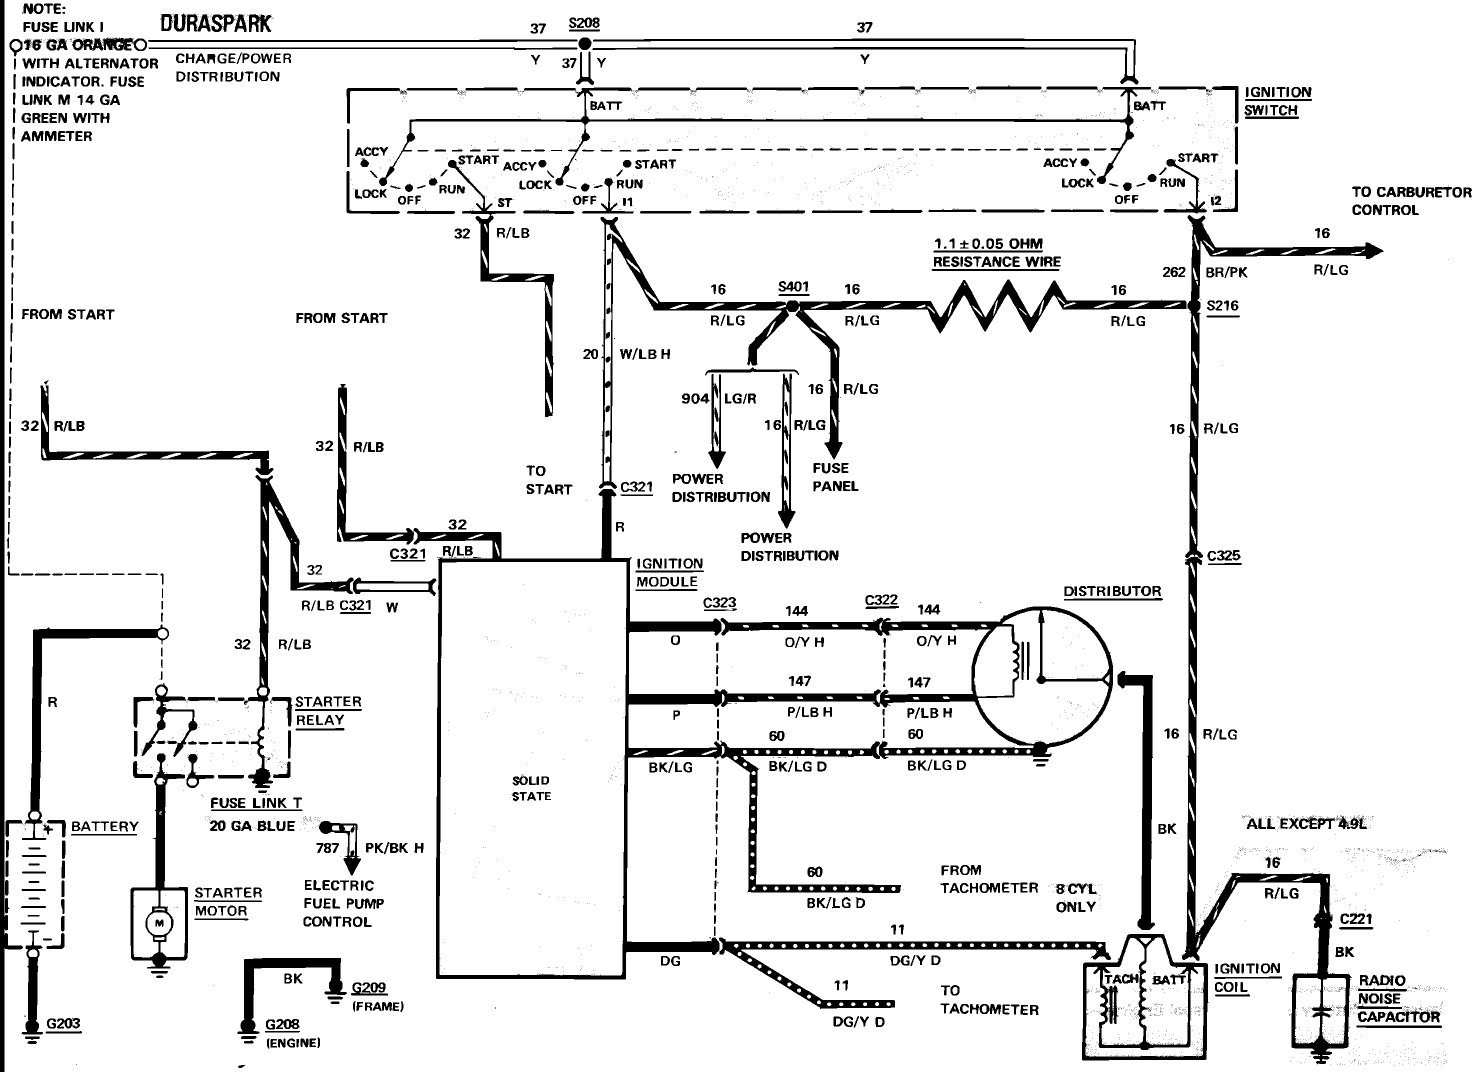 Ignition Key Switch Wiring Diagram